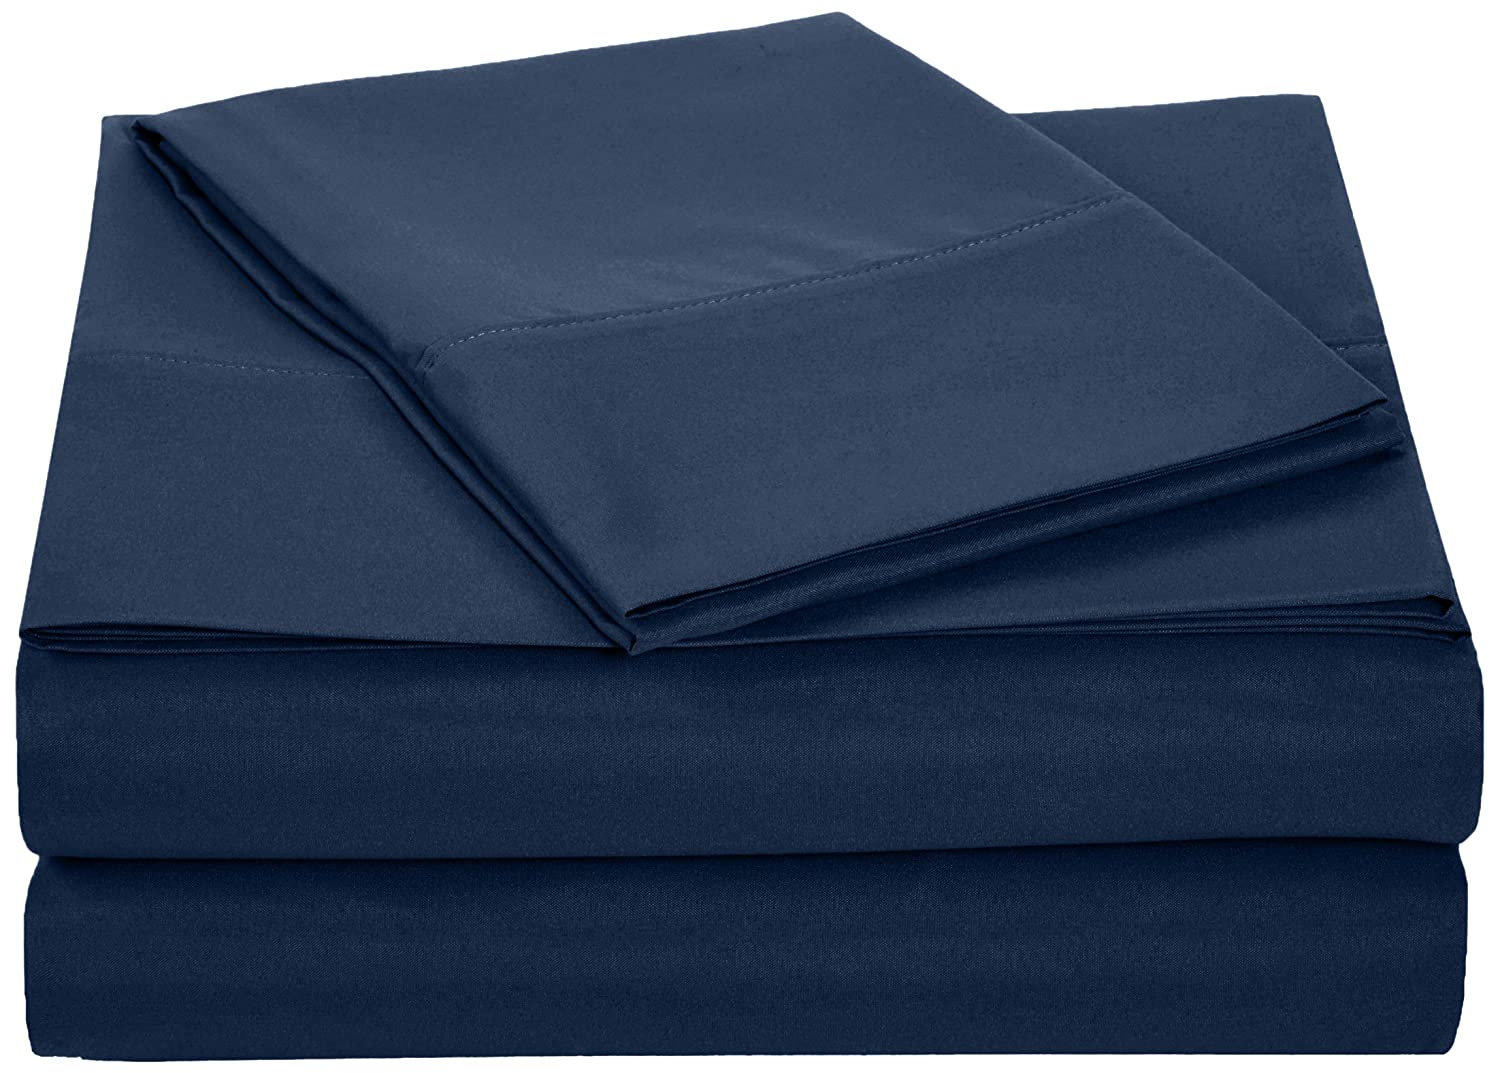 AmazonBasics Twin Microfiber Sheet Set, Navy Blue